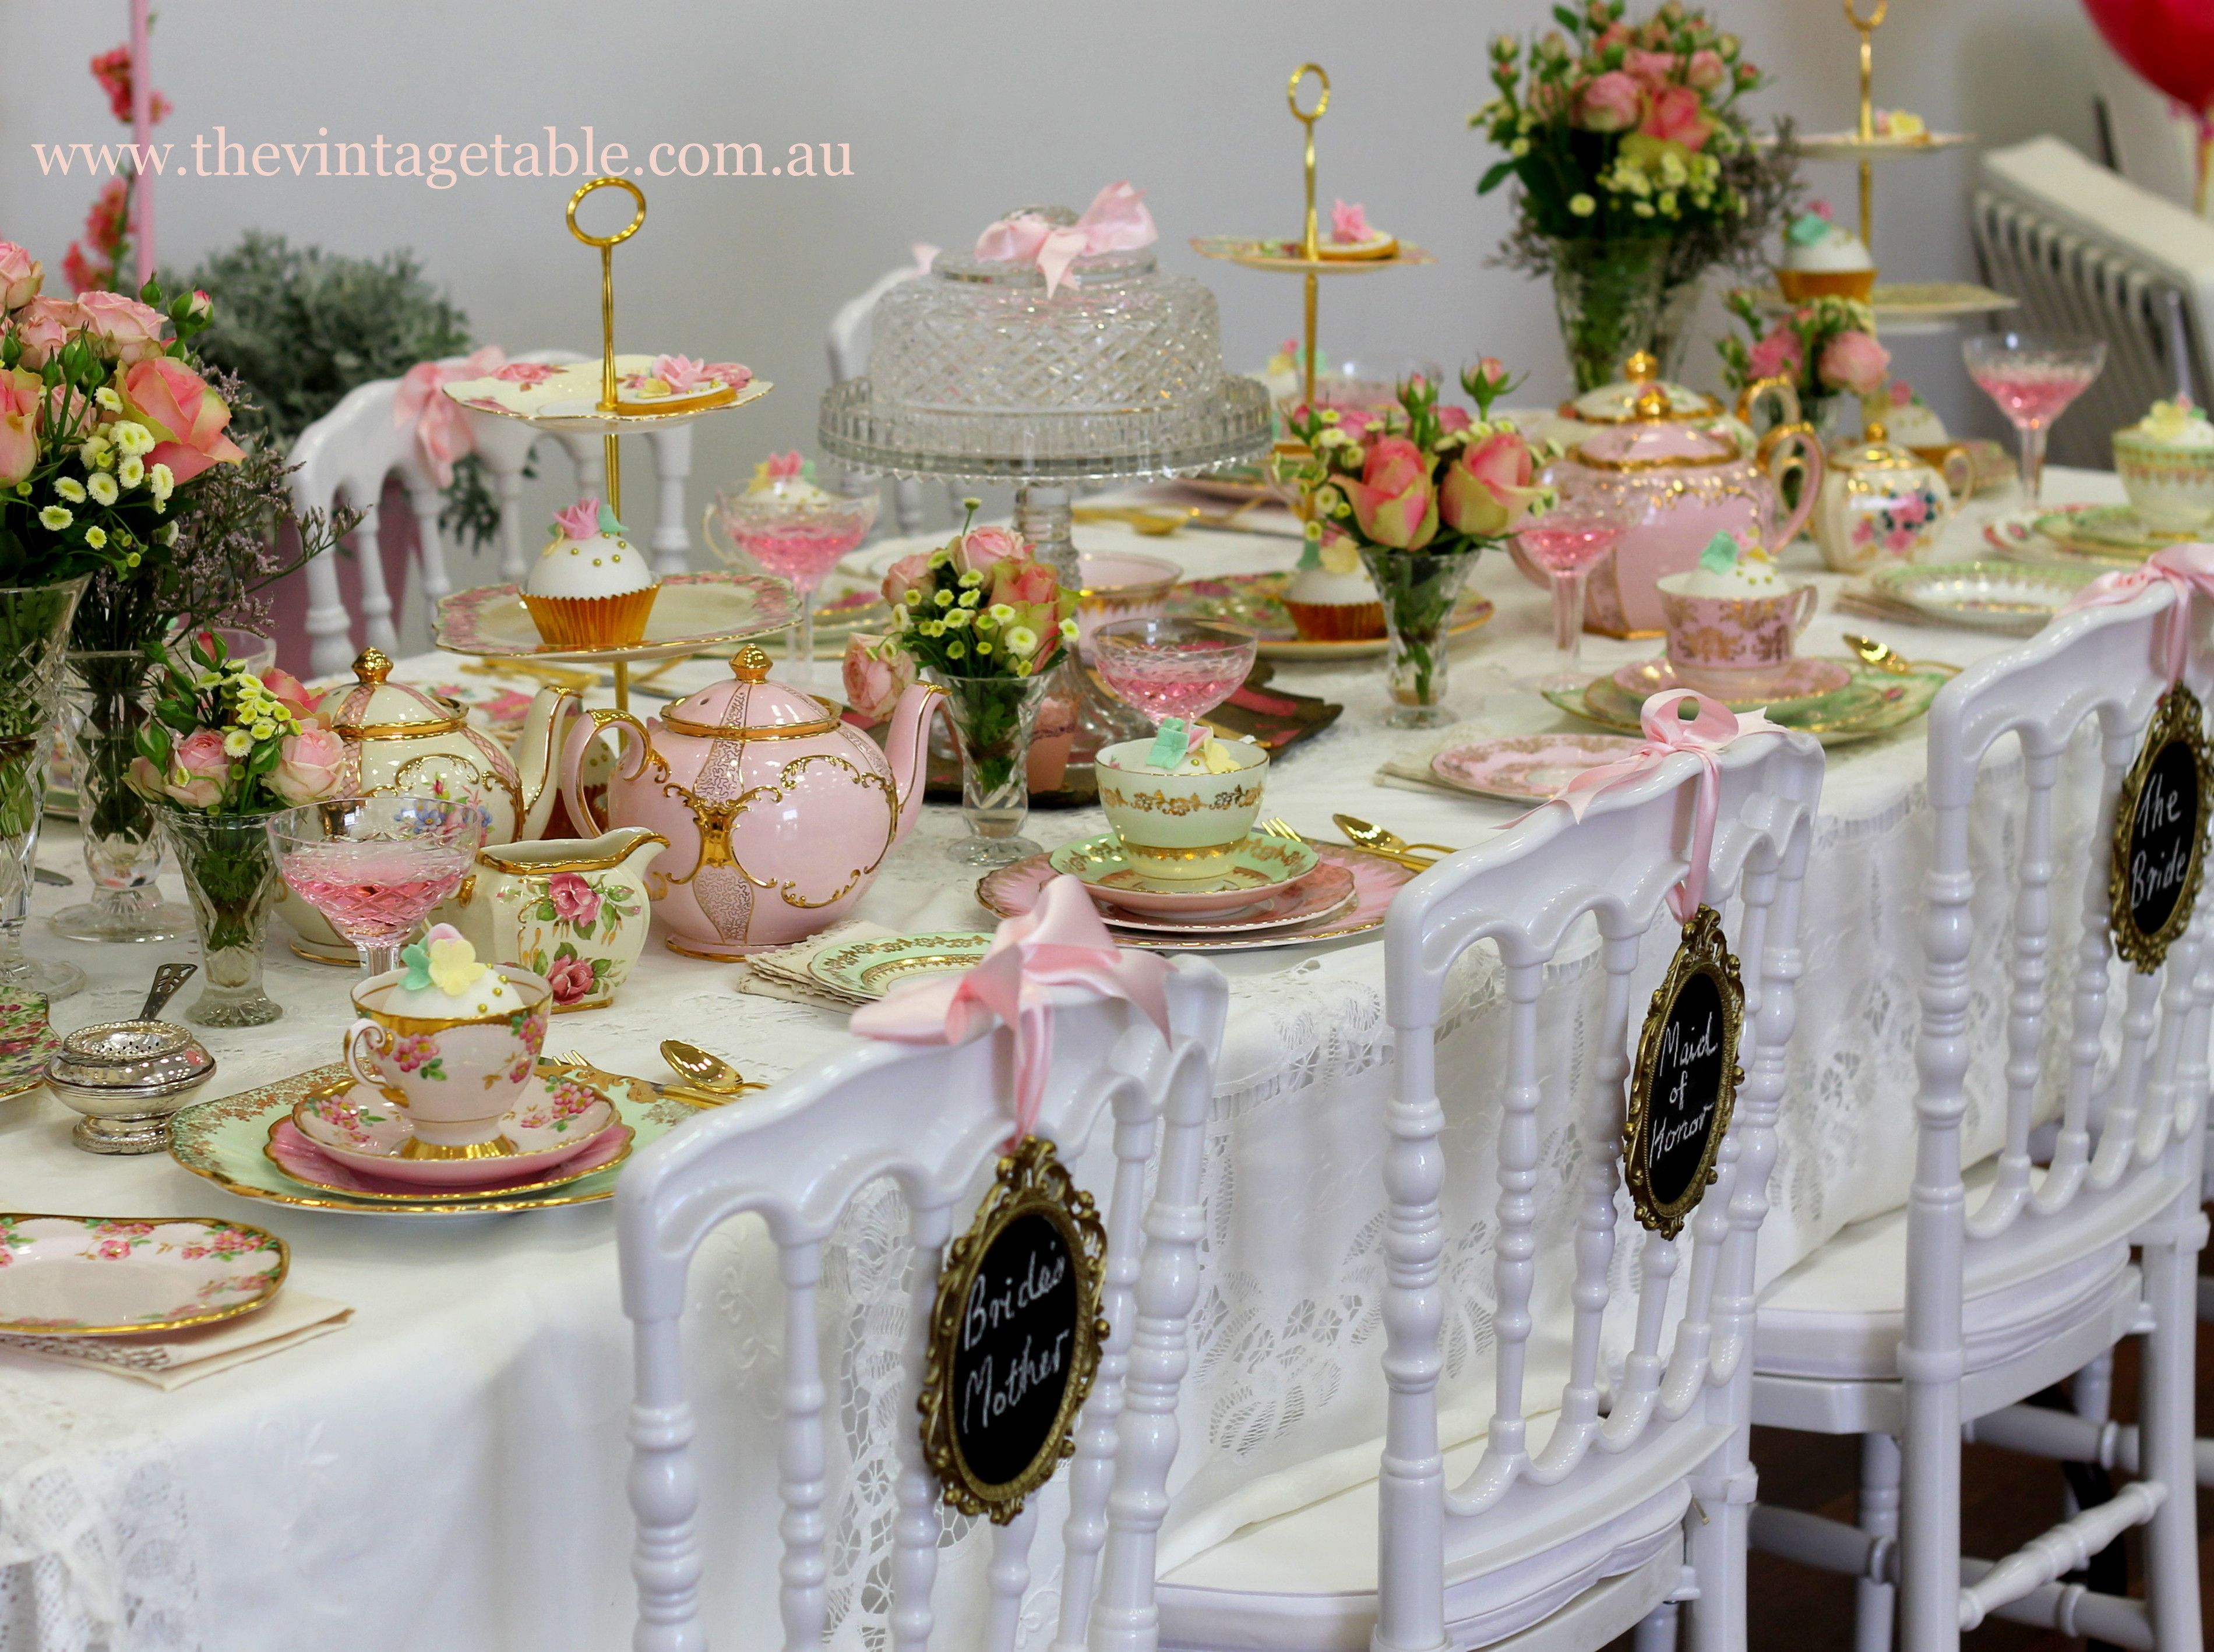 20 Images Tables Settings For Formal Tea Pictures And Ideas On